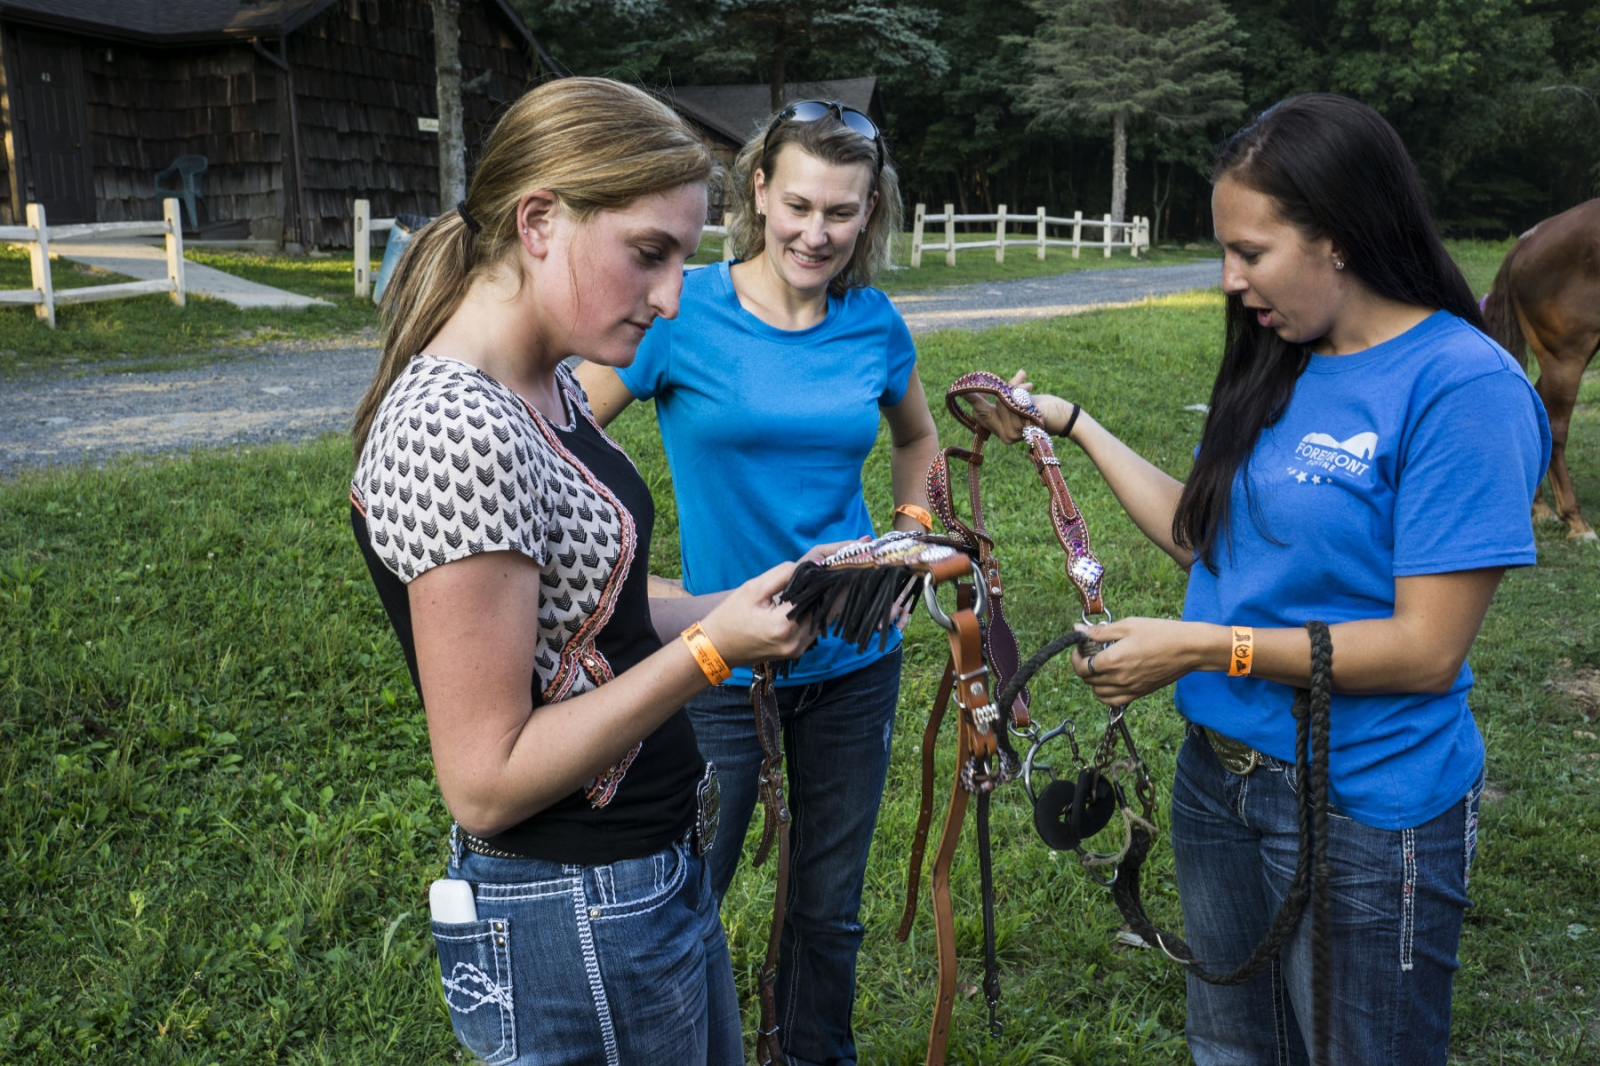 Taylor Young looking at decorated leather harnesses for horses, with friends from Cowtown Rodeo, at Malibu Rodeo in Milford, Pennsylvania.(Kevin C. Downs/Agence Cosmos)